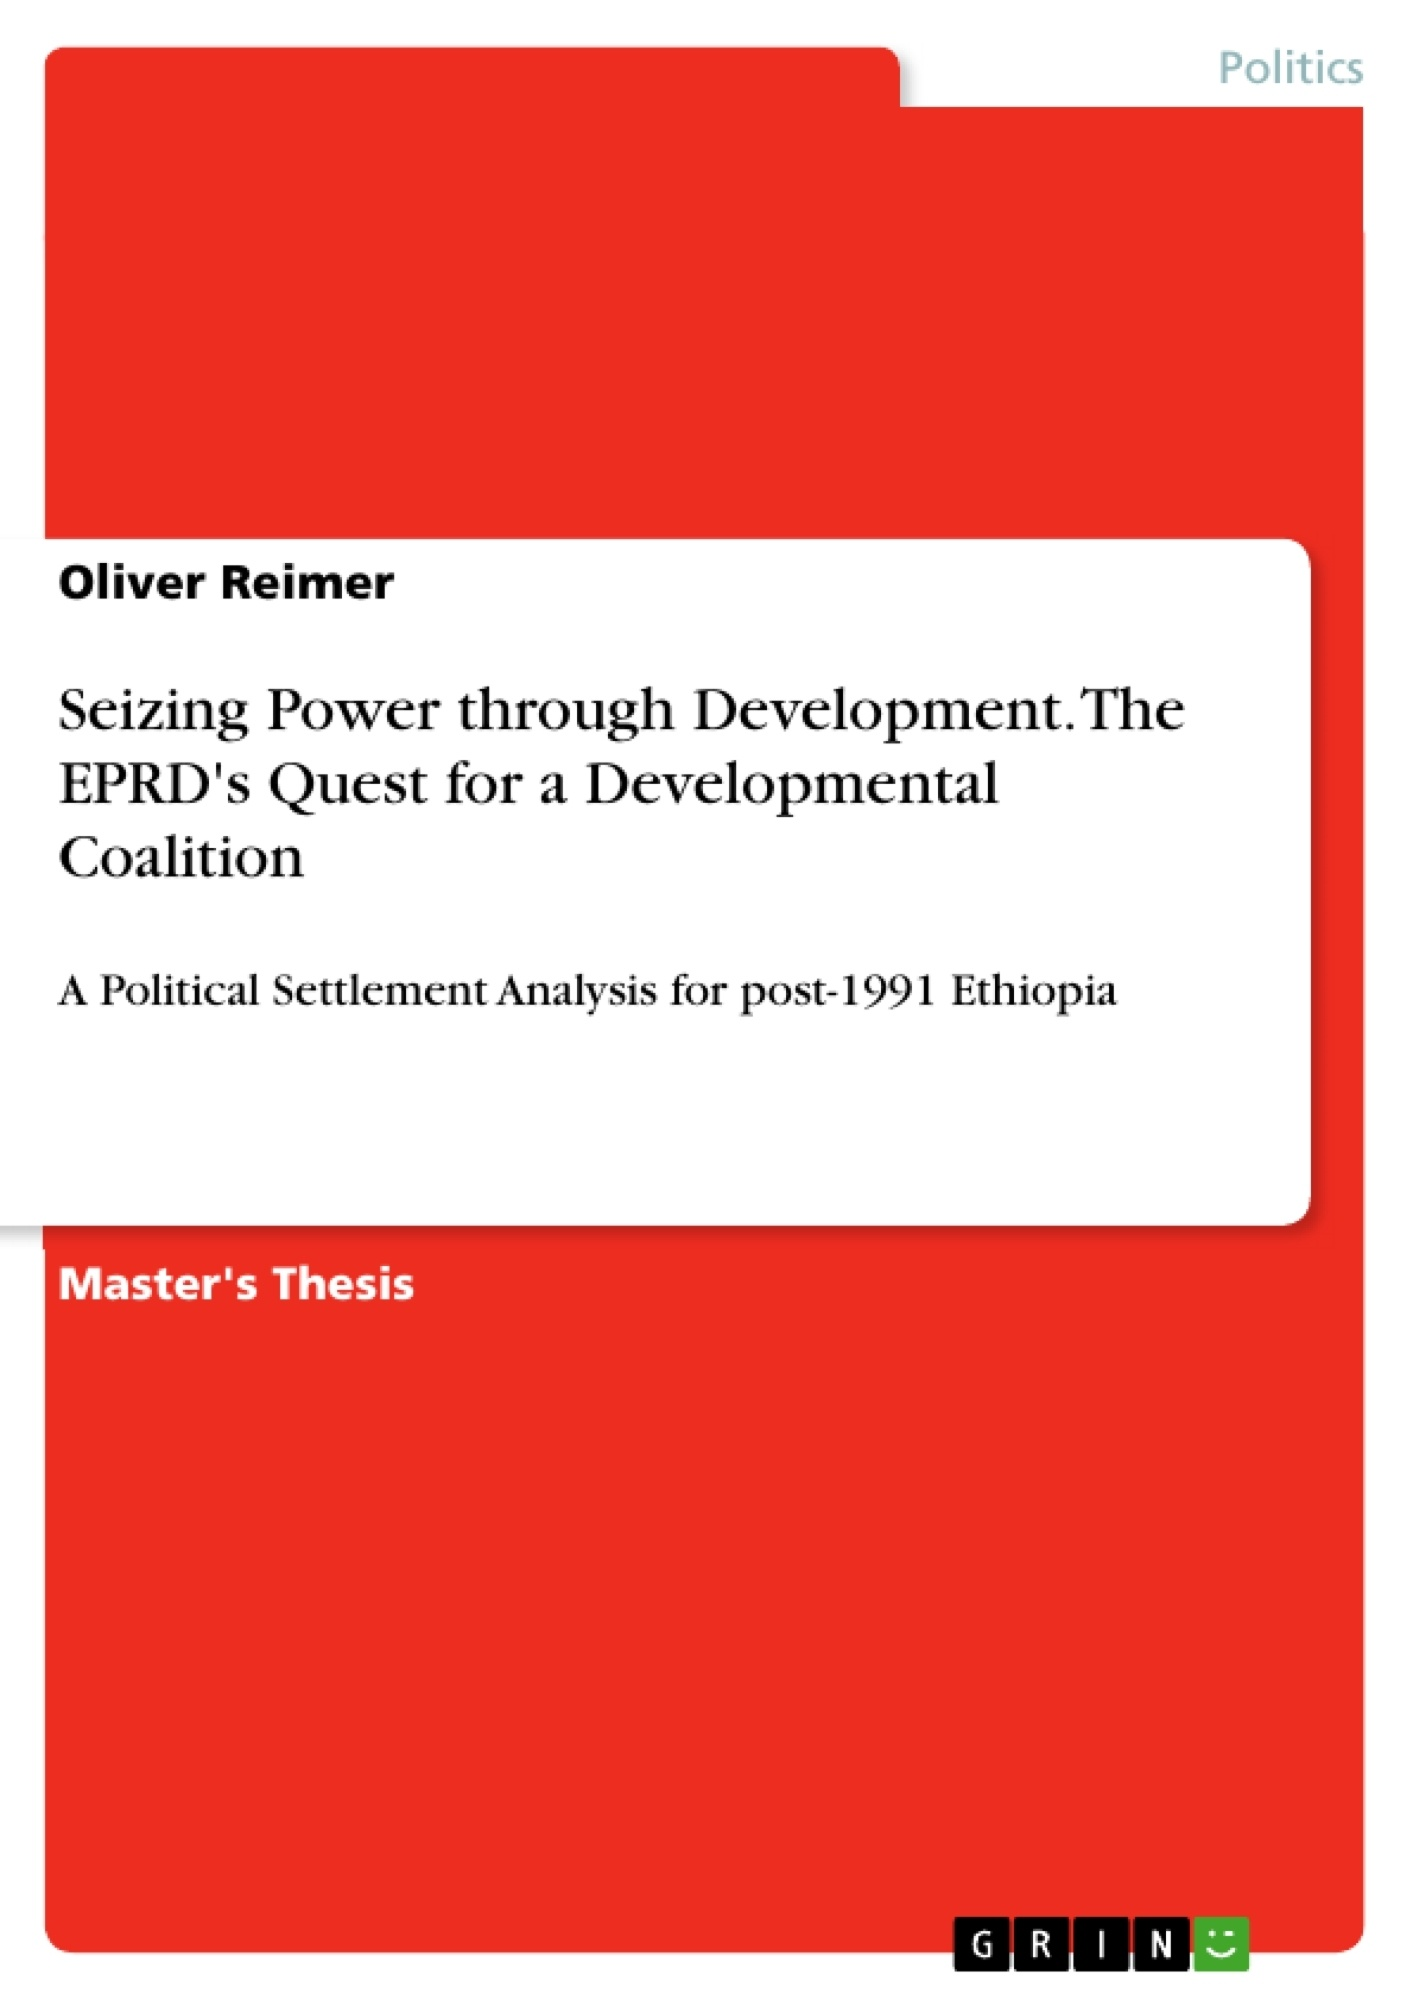 Title: Seizing Power through Development. The EPRD's Quest for a Developmental Coalition